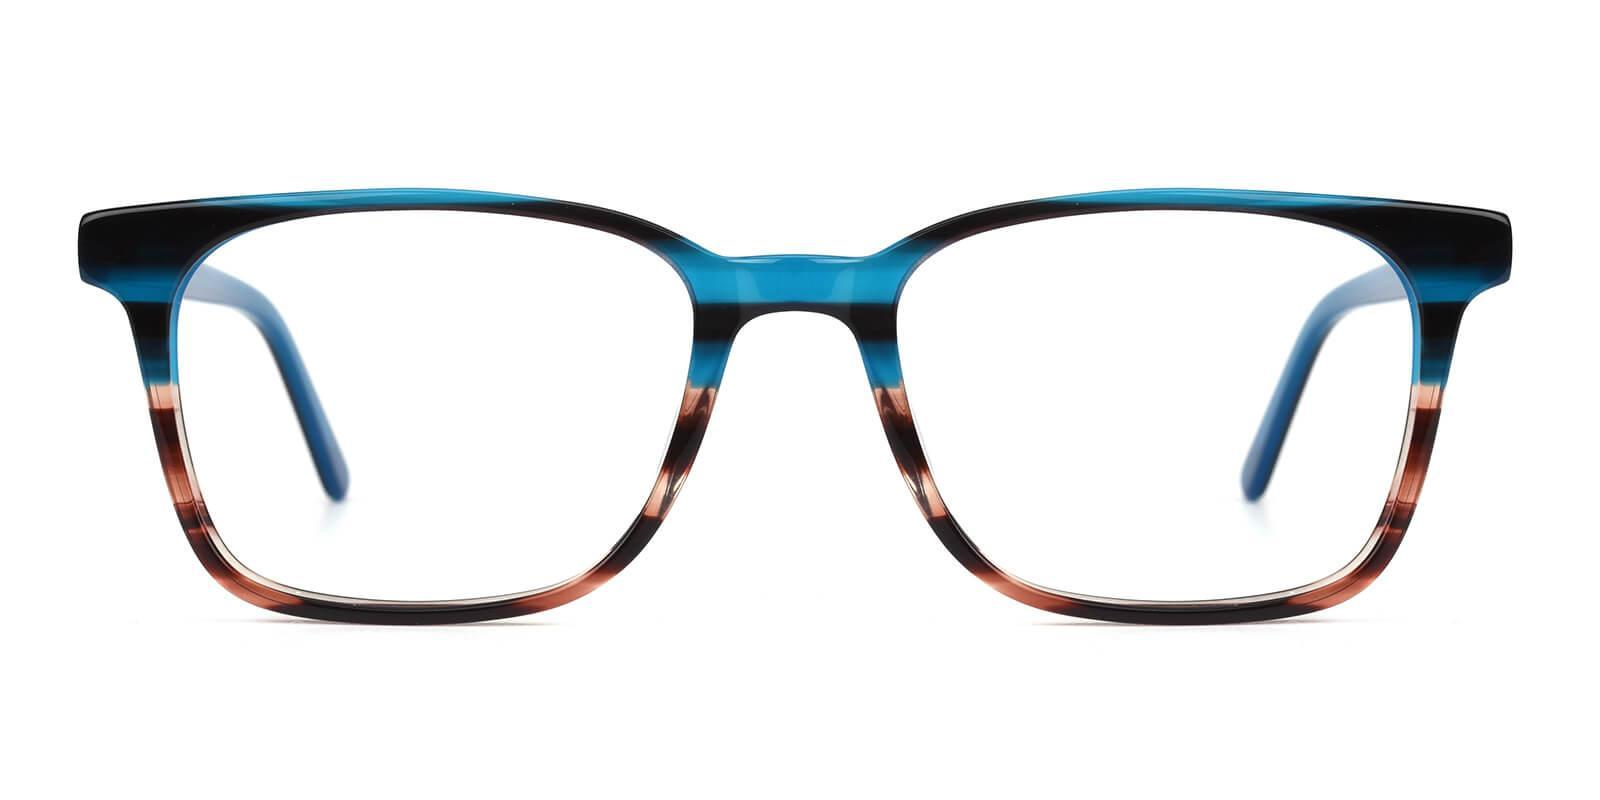 Reverb Blue Acetate Eyeglasses , SpringHinges , UniversalBridgeFit Frames from ABBE Glasses